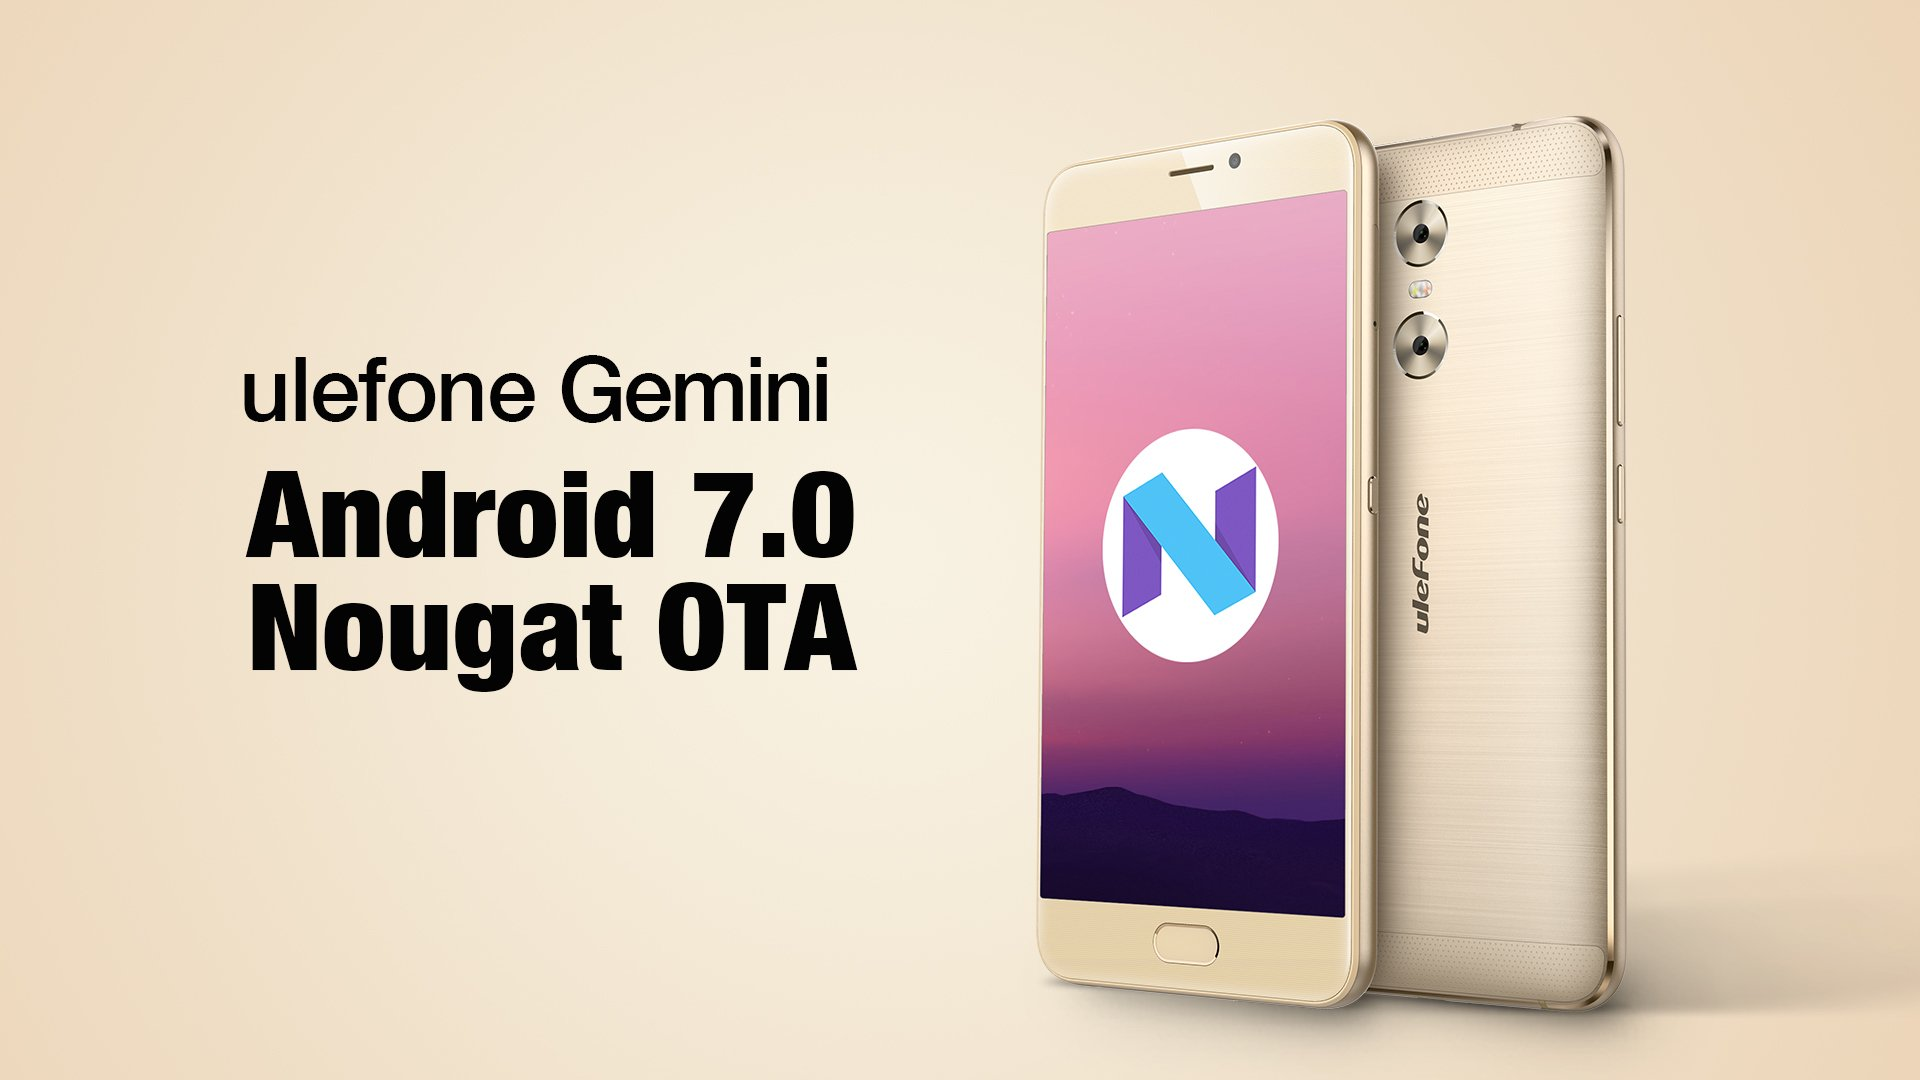 Ulefone Gemini: Αναβαθμίζεται σε Android 7.0 Nougat! 1